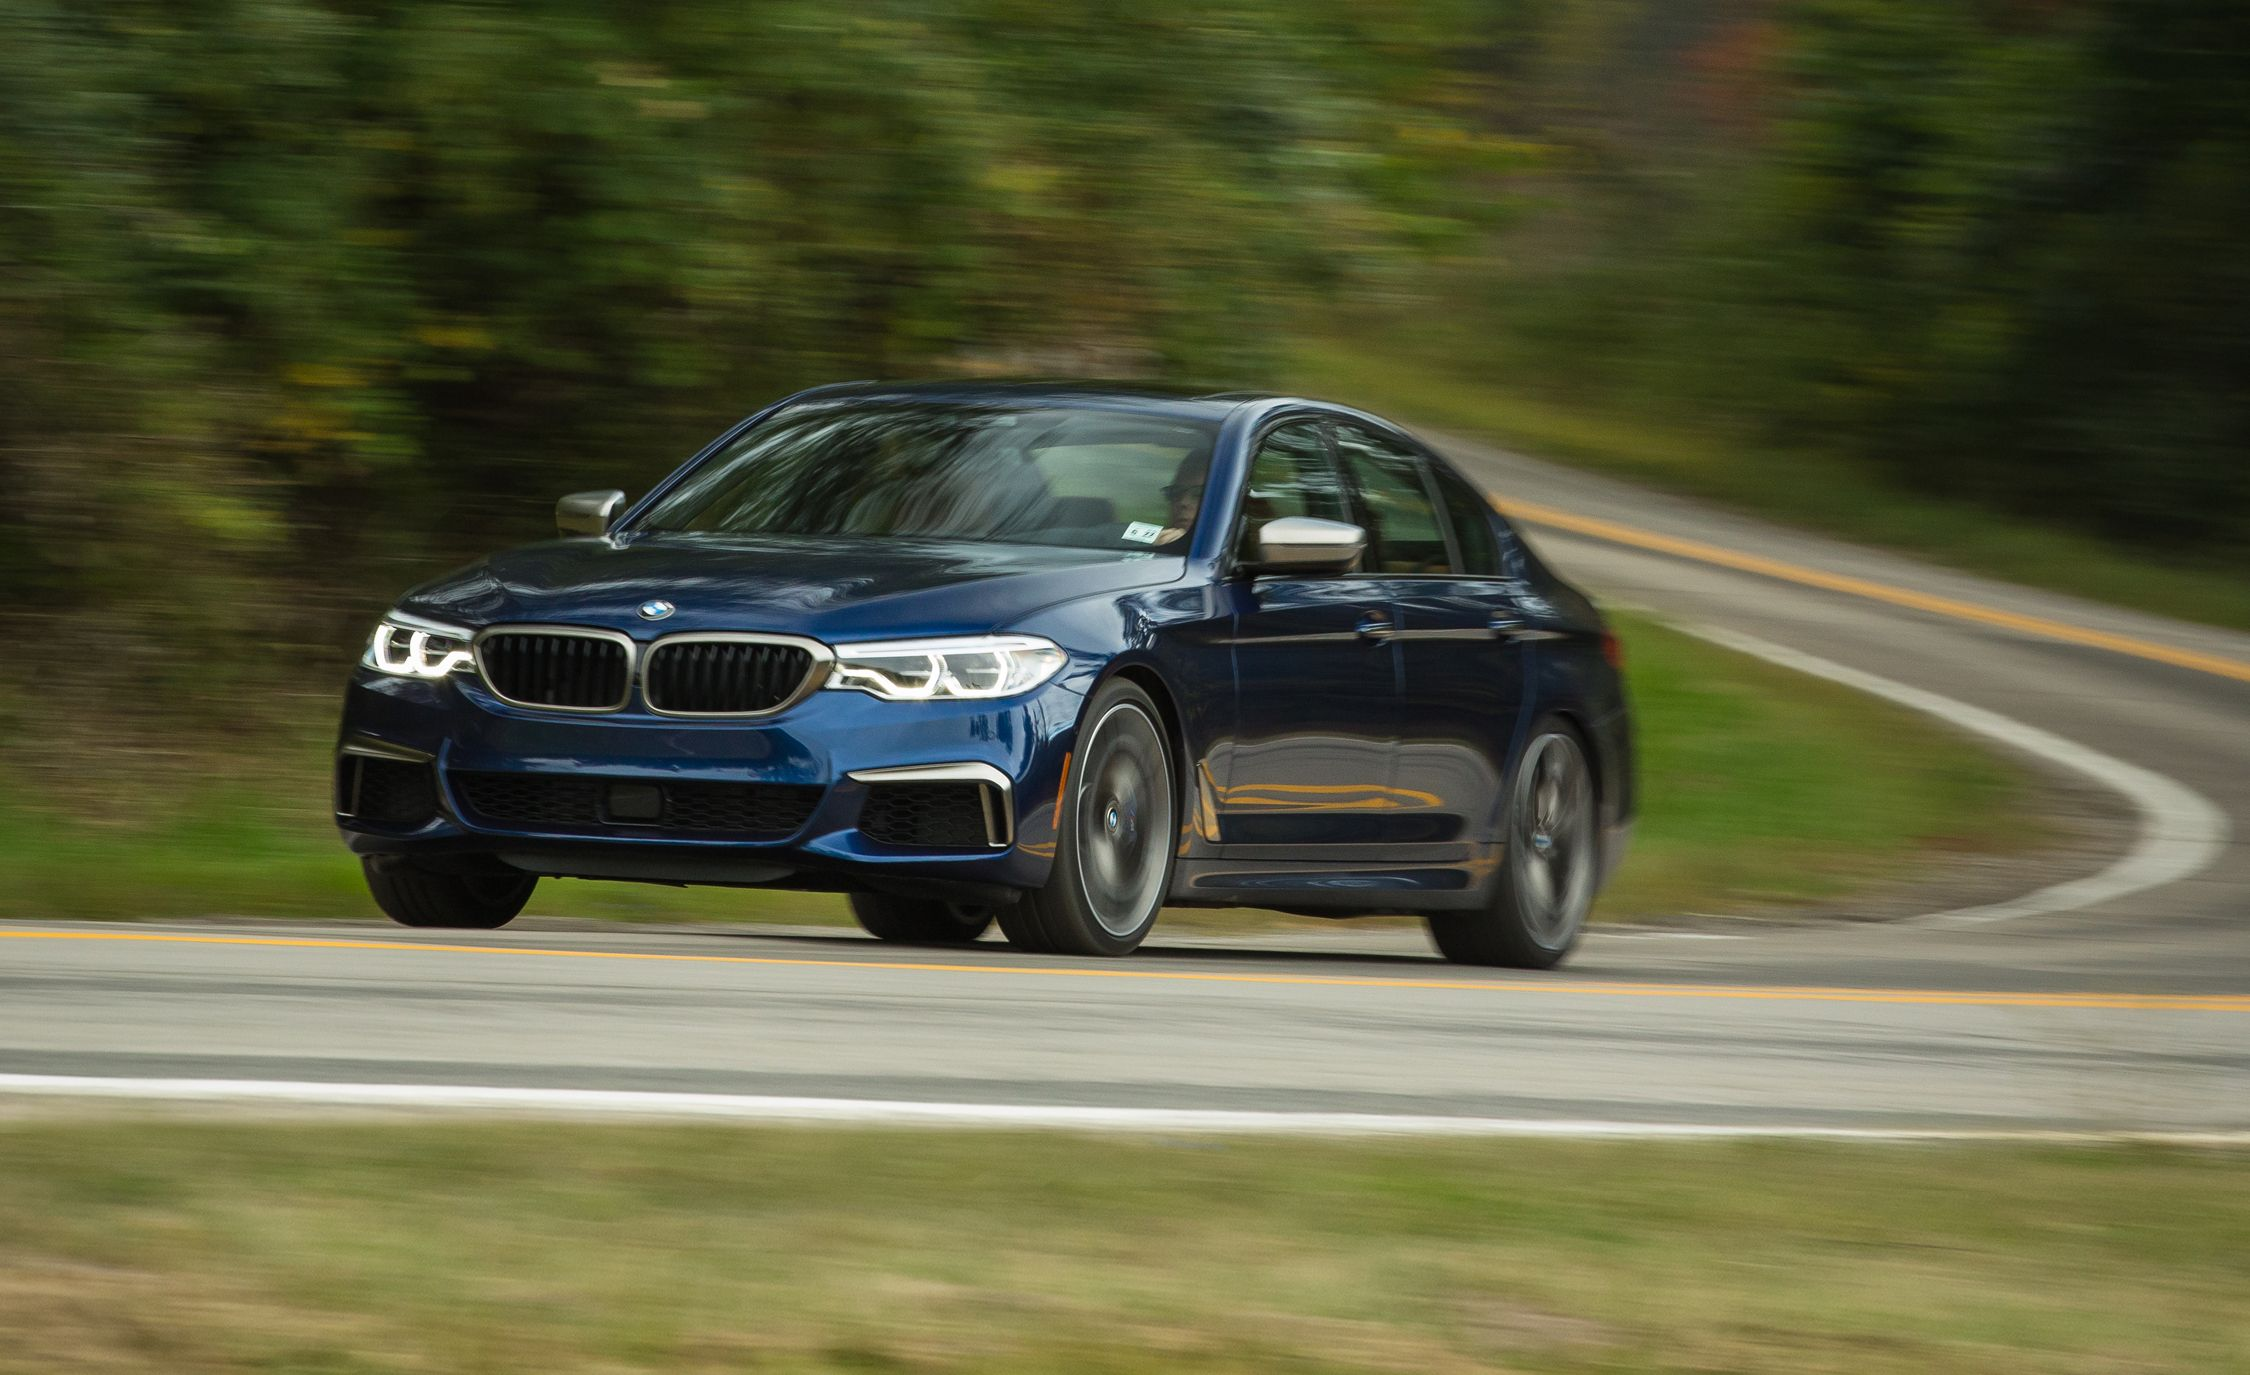 2018 bmw 5 series in depth model review car and driver rh caranddriver com BMW 4 Series BMW 2010 Series 5